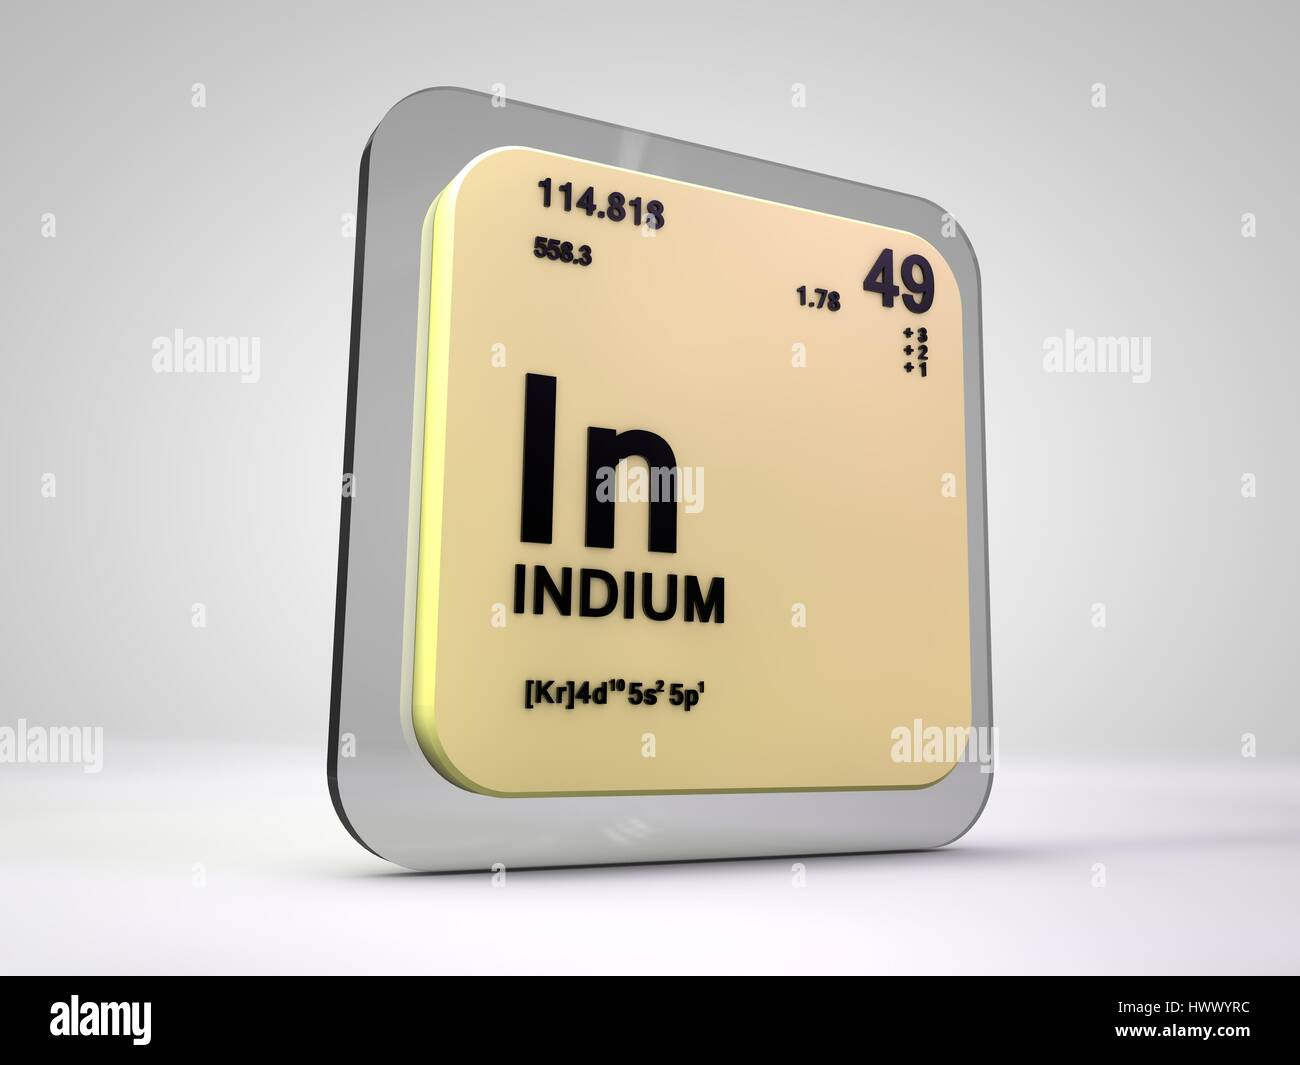 Indium in chemical element periodic table 3d render stock indium in chemical element periodic table 3d render gamestrikefo Images